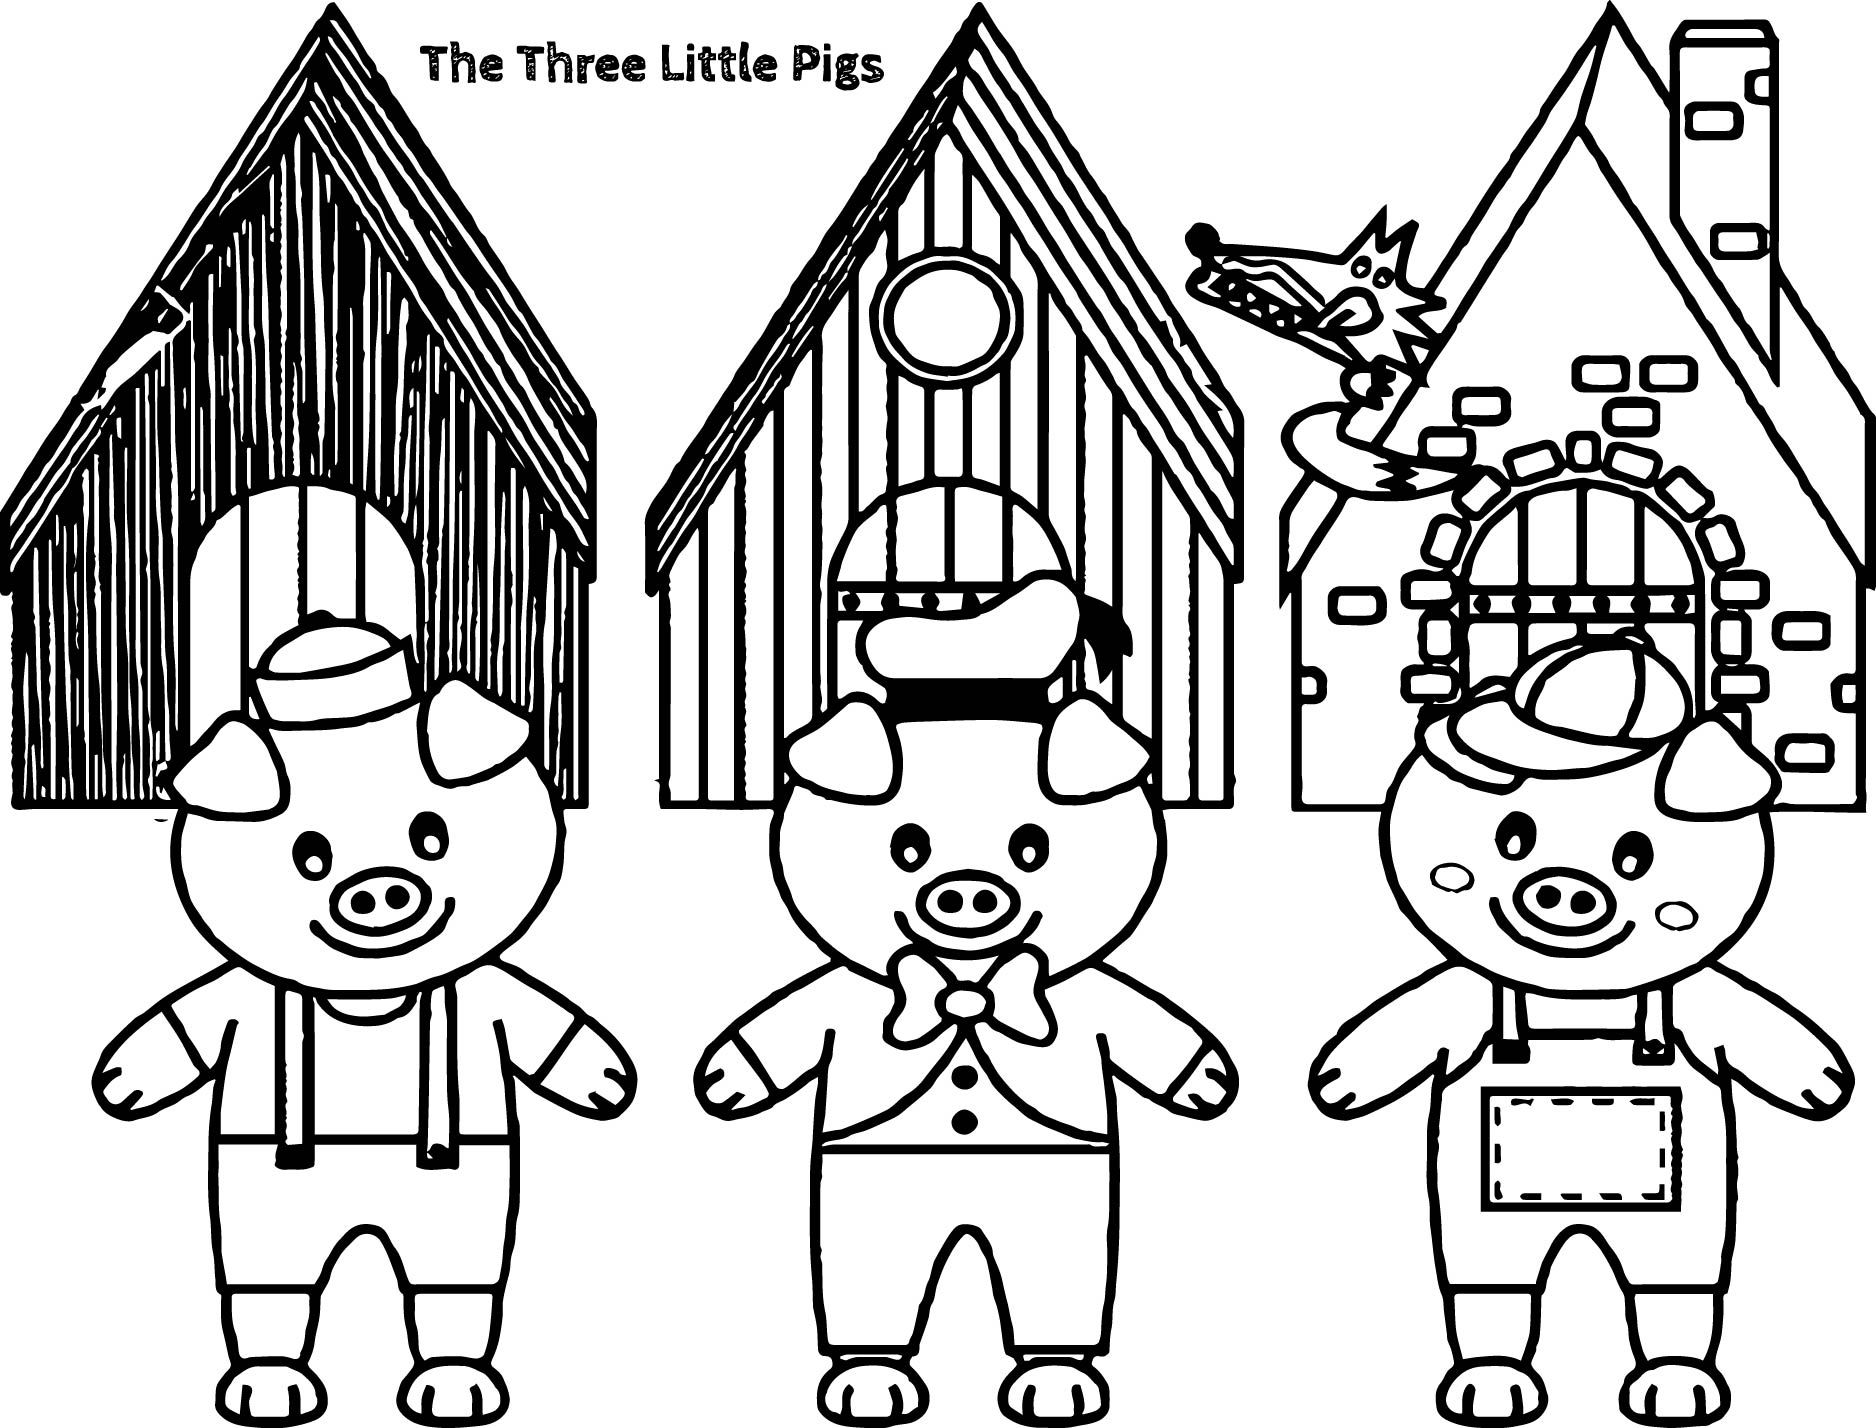 Awesome Three Little Pigs And The Big Bad Wolf Children Story Coloring Page Cartoon Coloring Pages Peppa Pig Coloring Pages Little Pigs